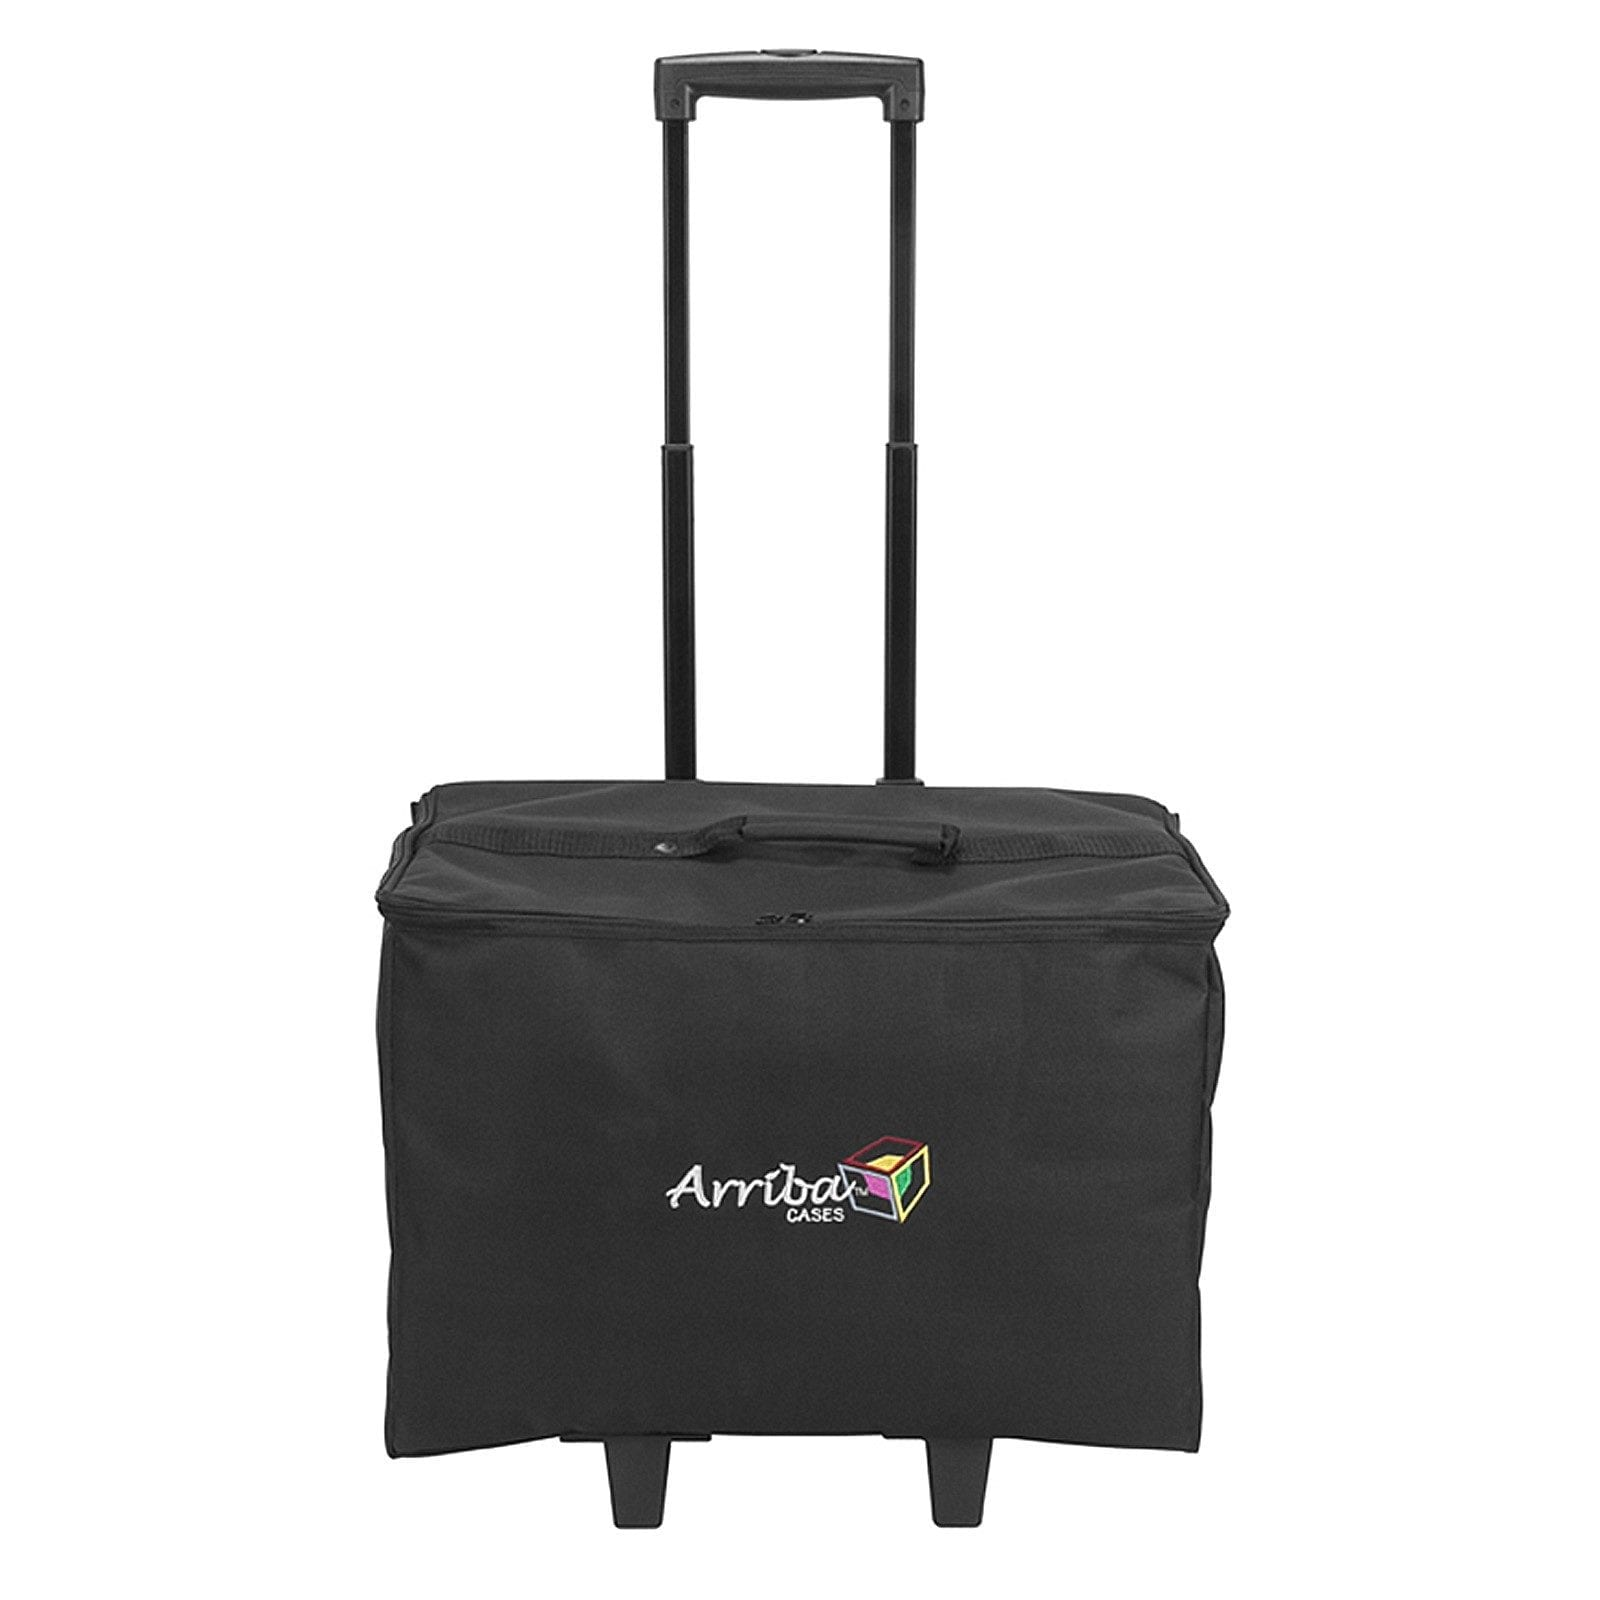 arriba-cases-acr-19-multi-purpose-stackable-rolling-bottom-case-with-wheels-51b